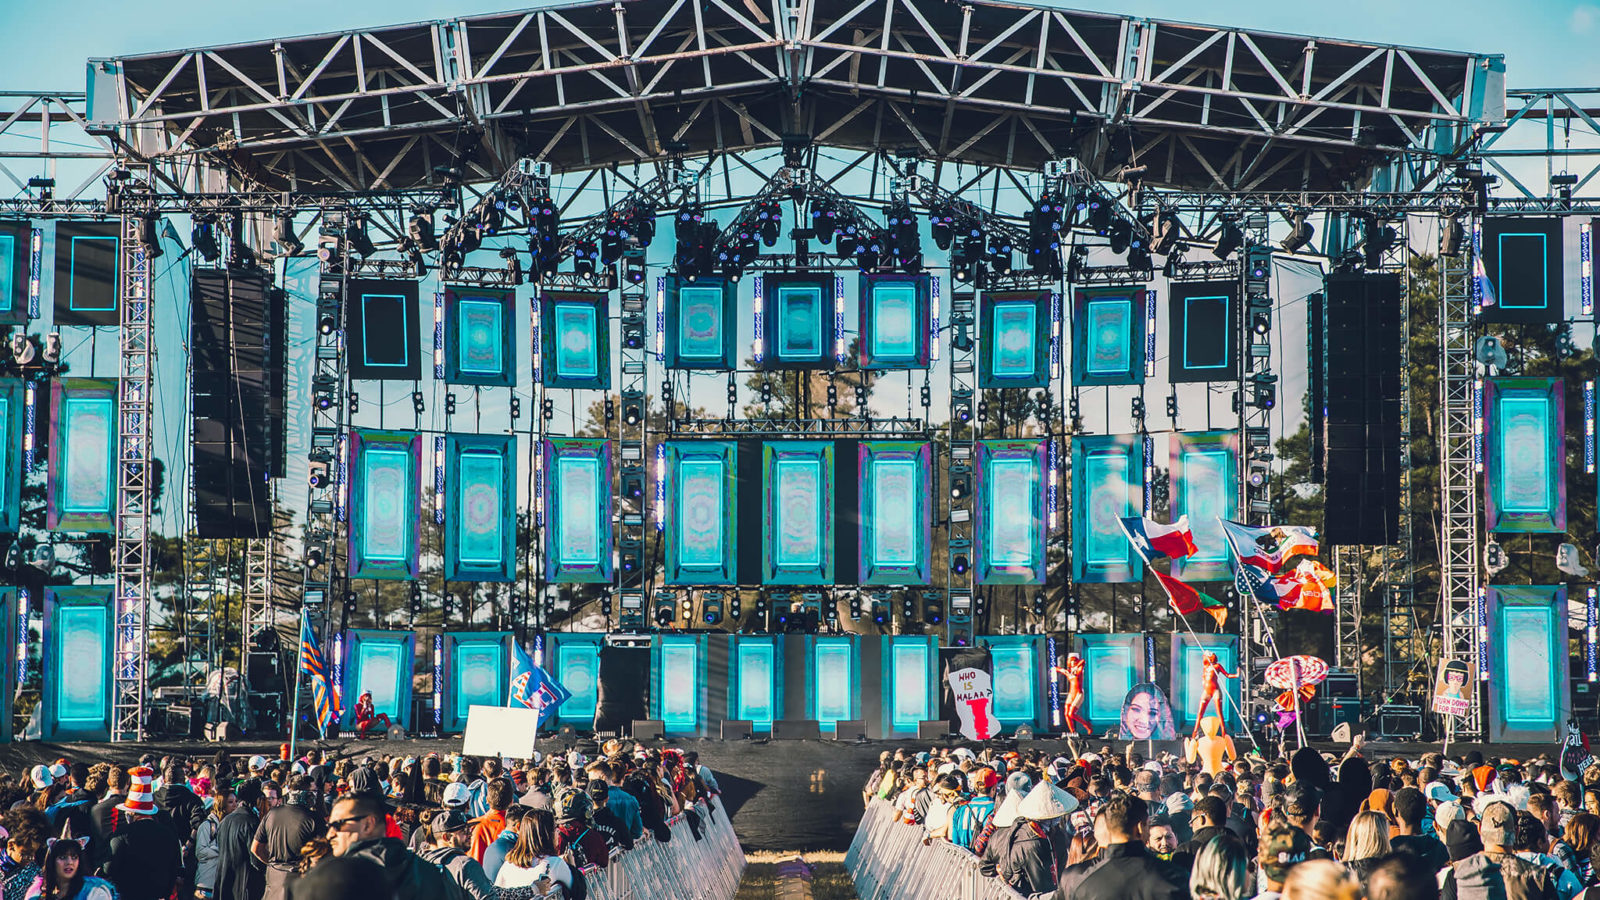 day time at the main stage